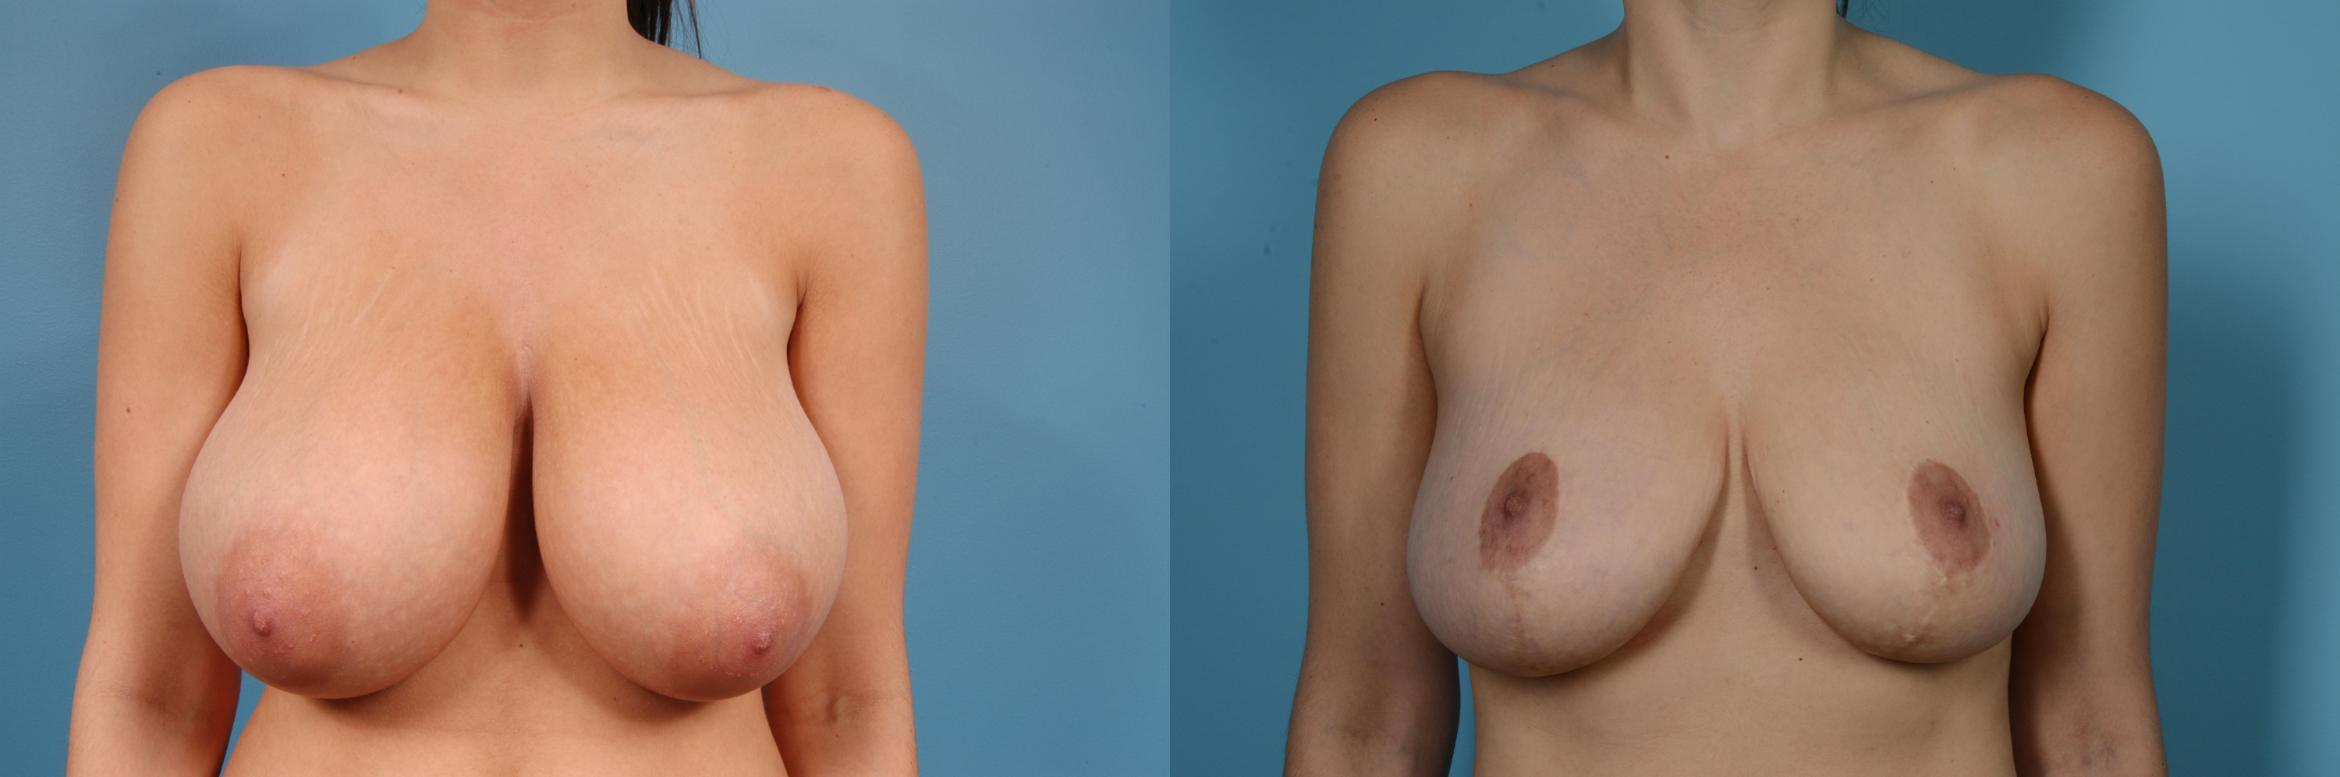 Breast Reduction Case 82 Before & After View #1 | Chicago, IL | TLKM Plastic Surgery